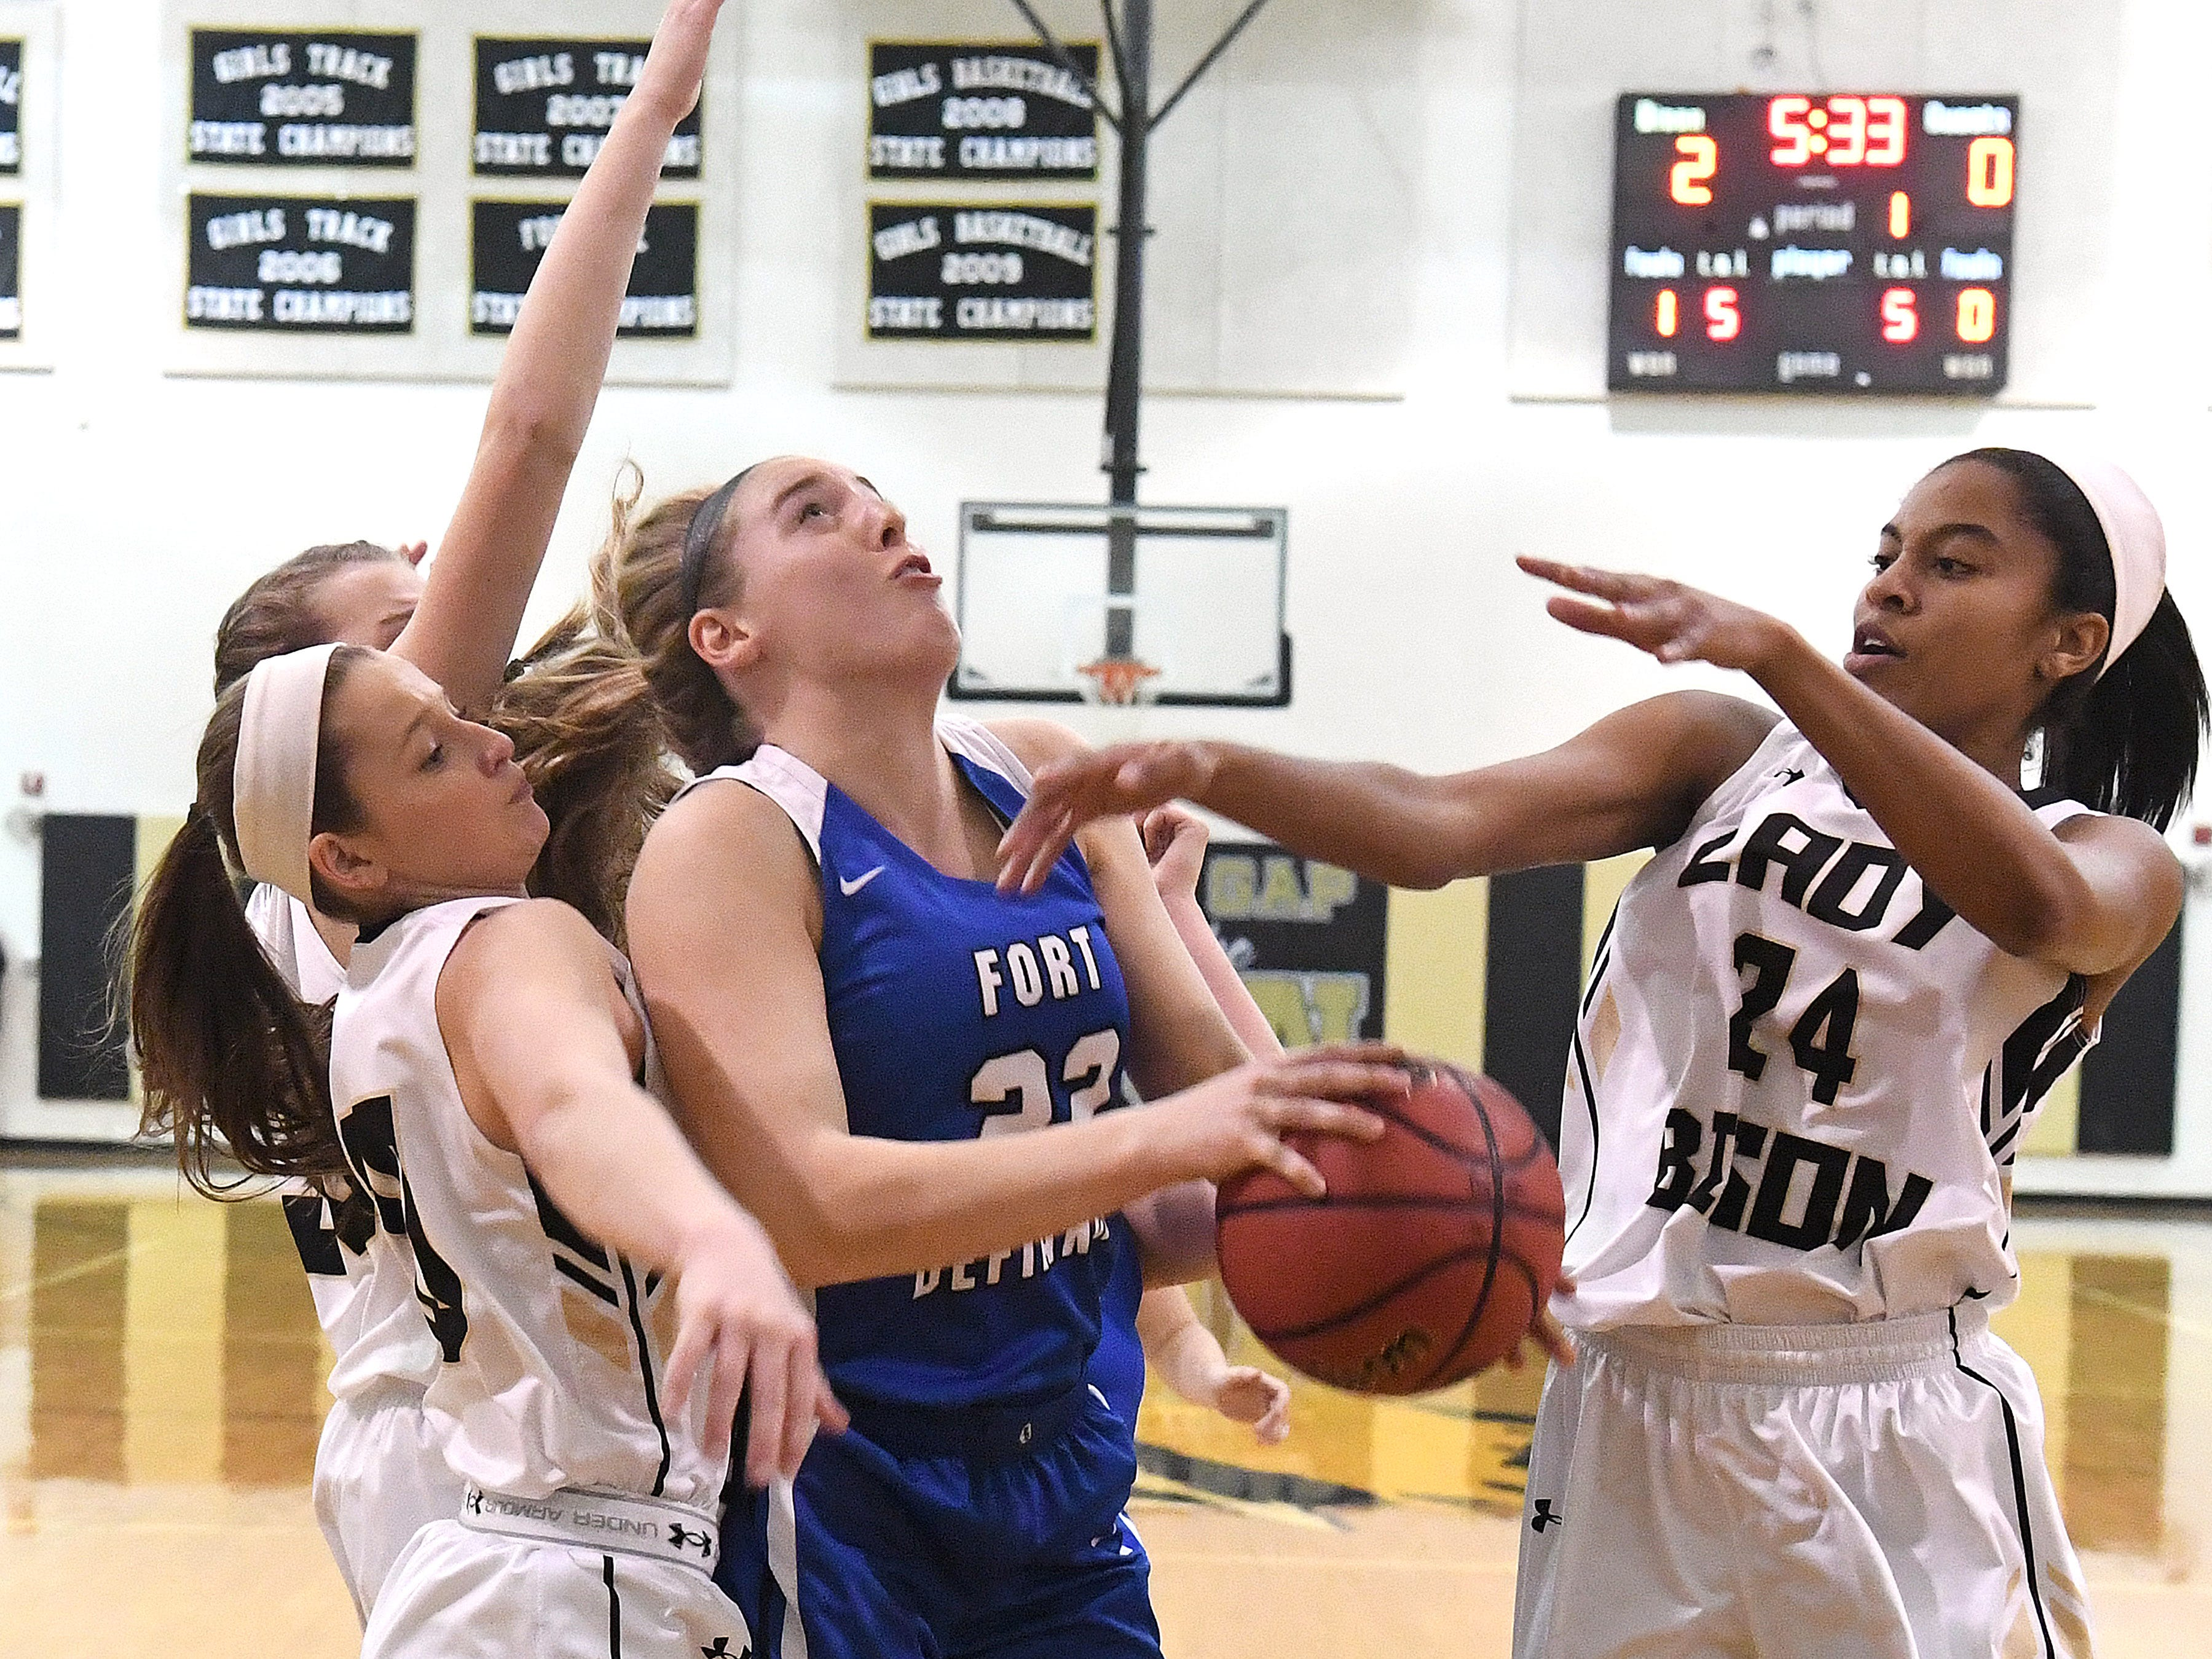 Fort Defiance's Catie Cramer looks to the basket to shoot as Buffalo Gap's Amaya Lucas (#24) guards during a game played in Swoope on Wednesday, Dec. 5, 2018.